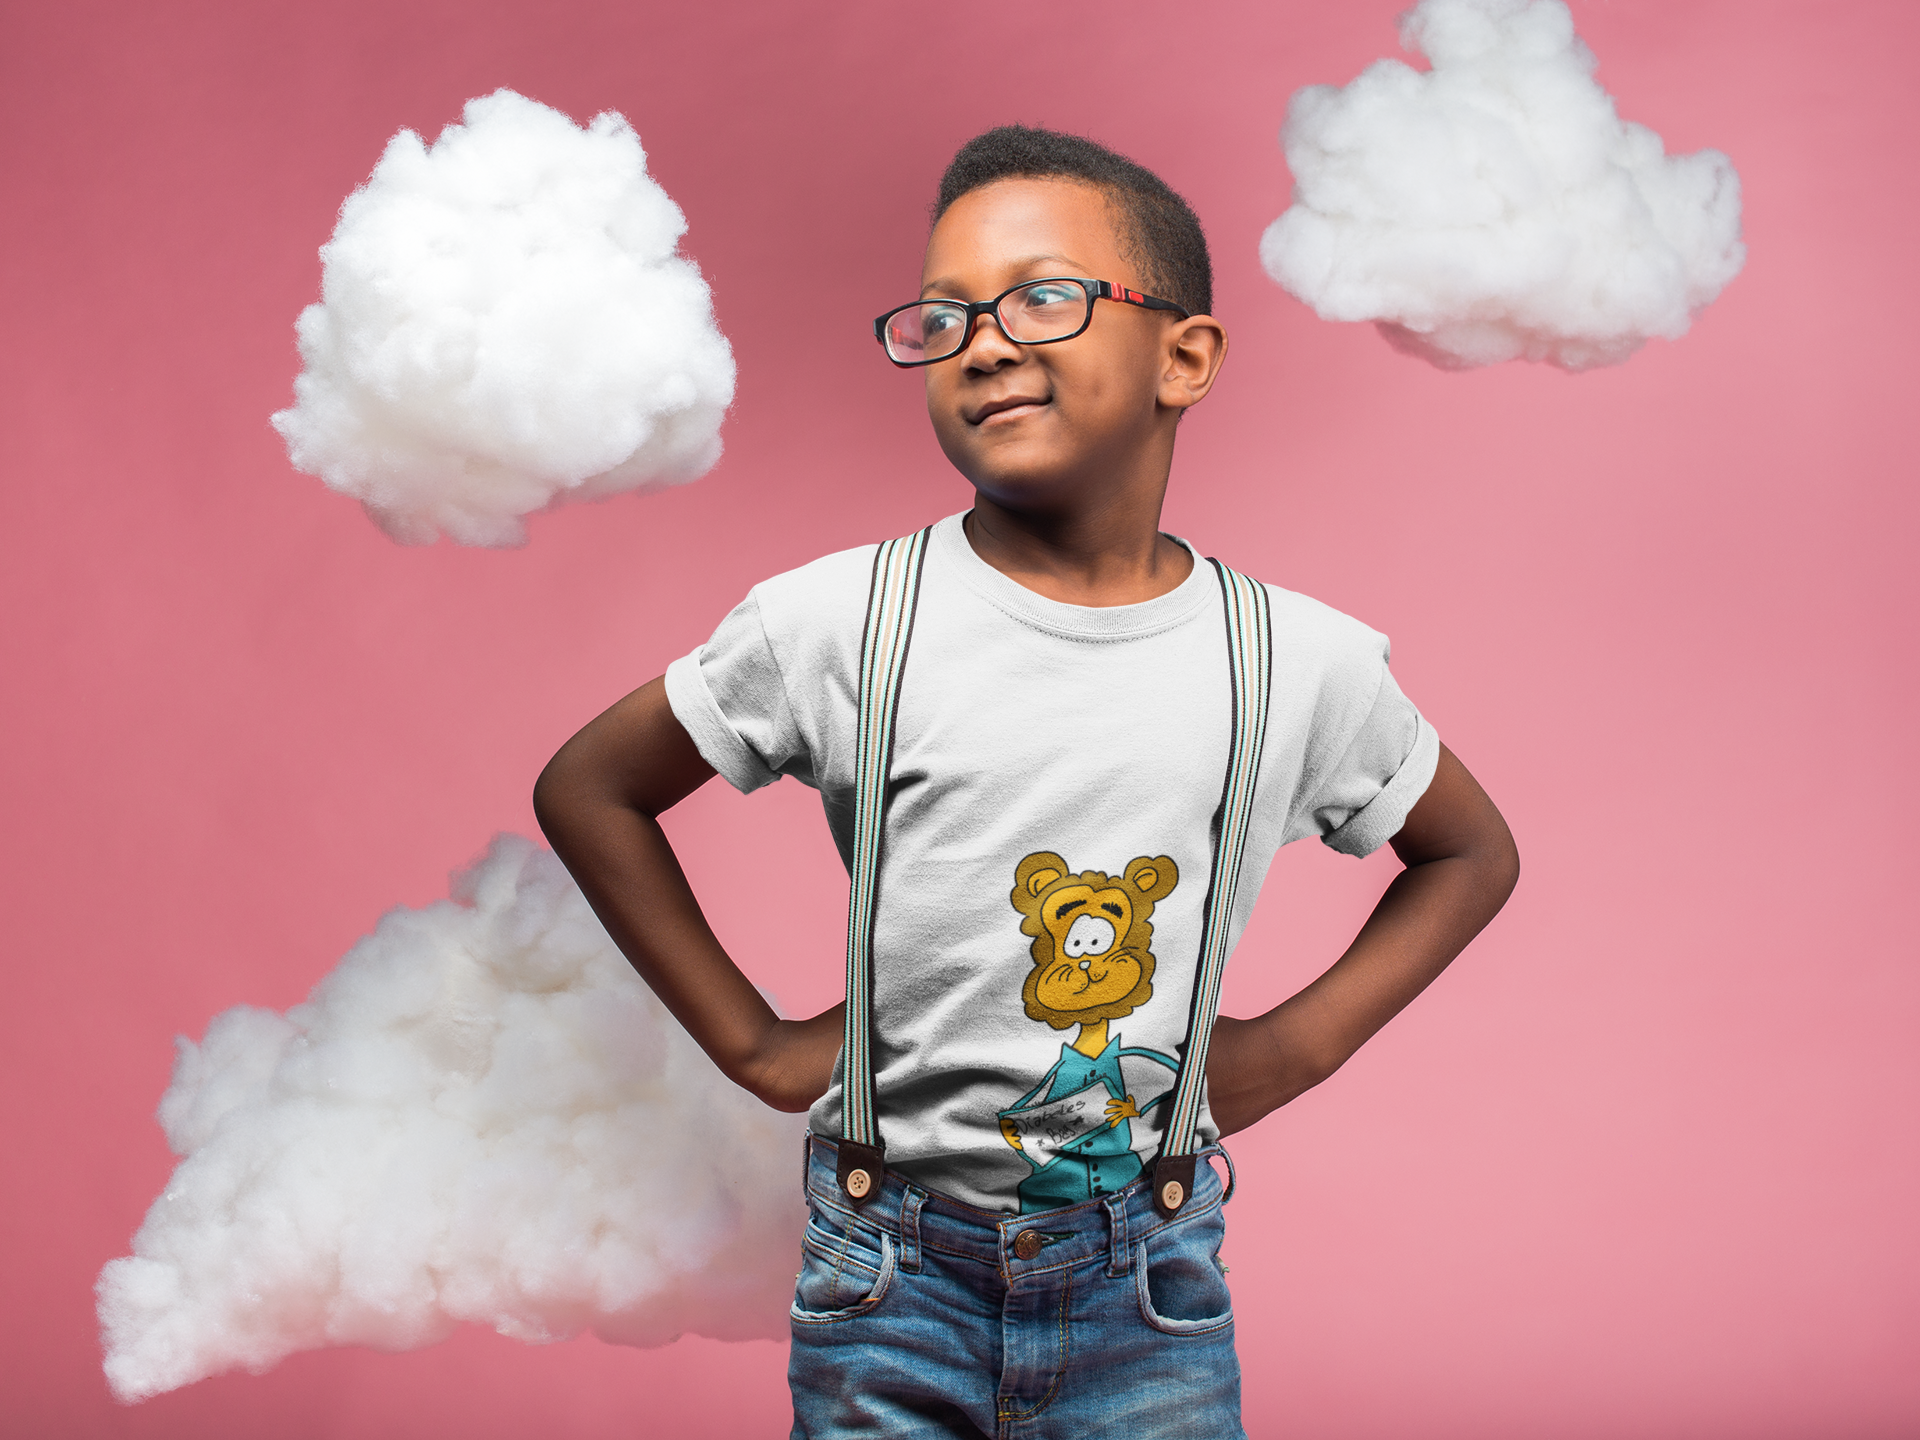 black-kid-wearing-a-t-shirt-mockup-and-glasses-while-standing-in-a-pink-room-with-clouds-a19727.png